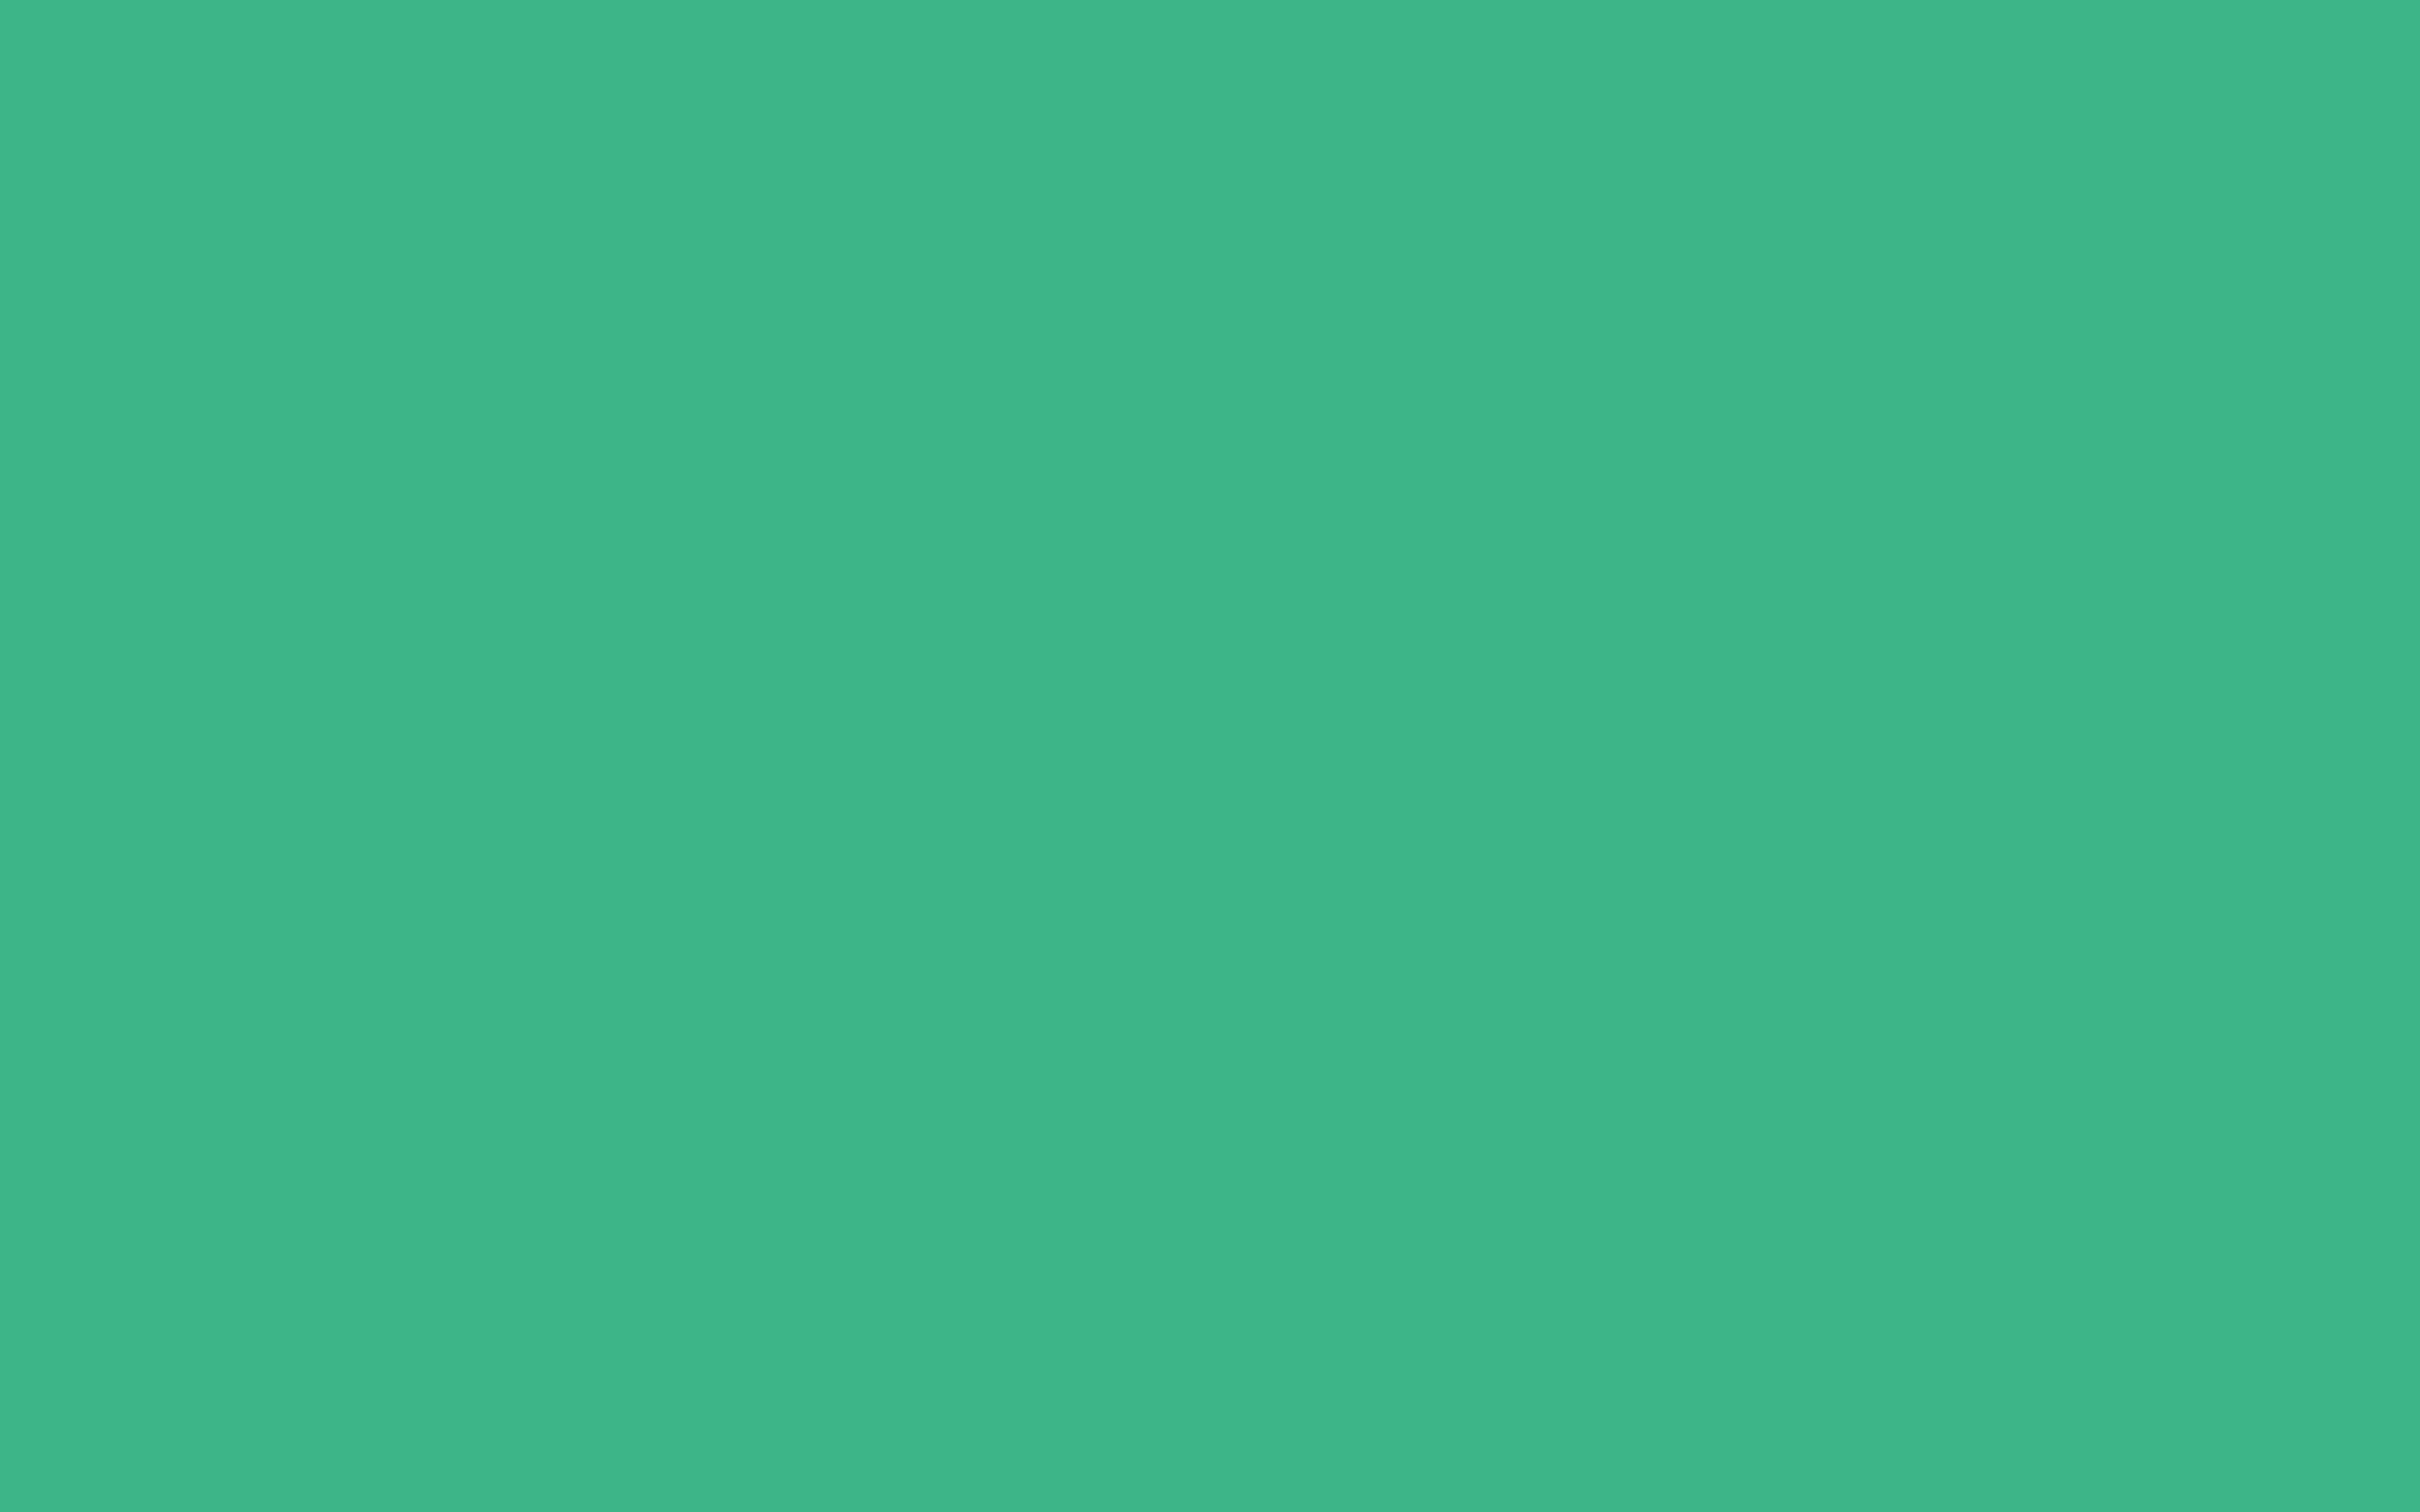 2880x1800 Mint Solid Color Background